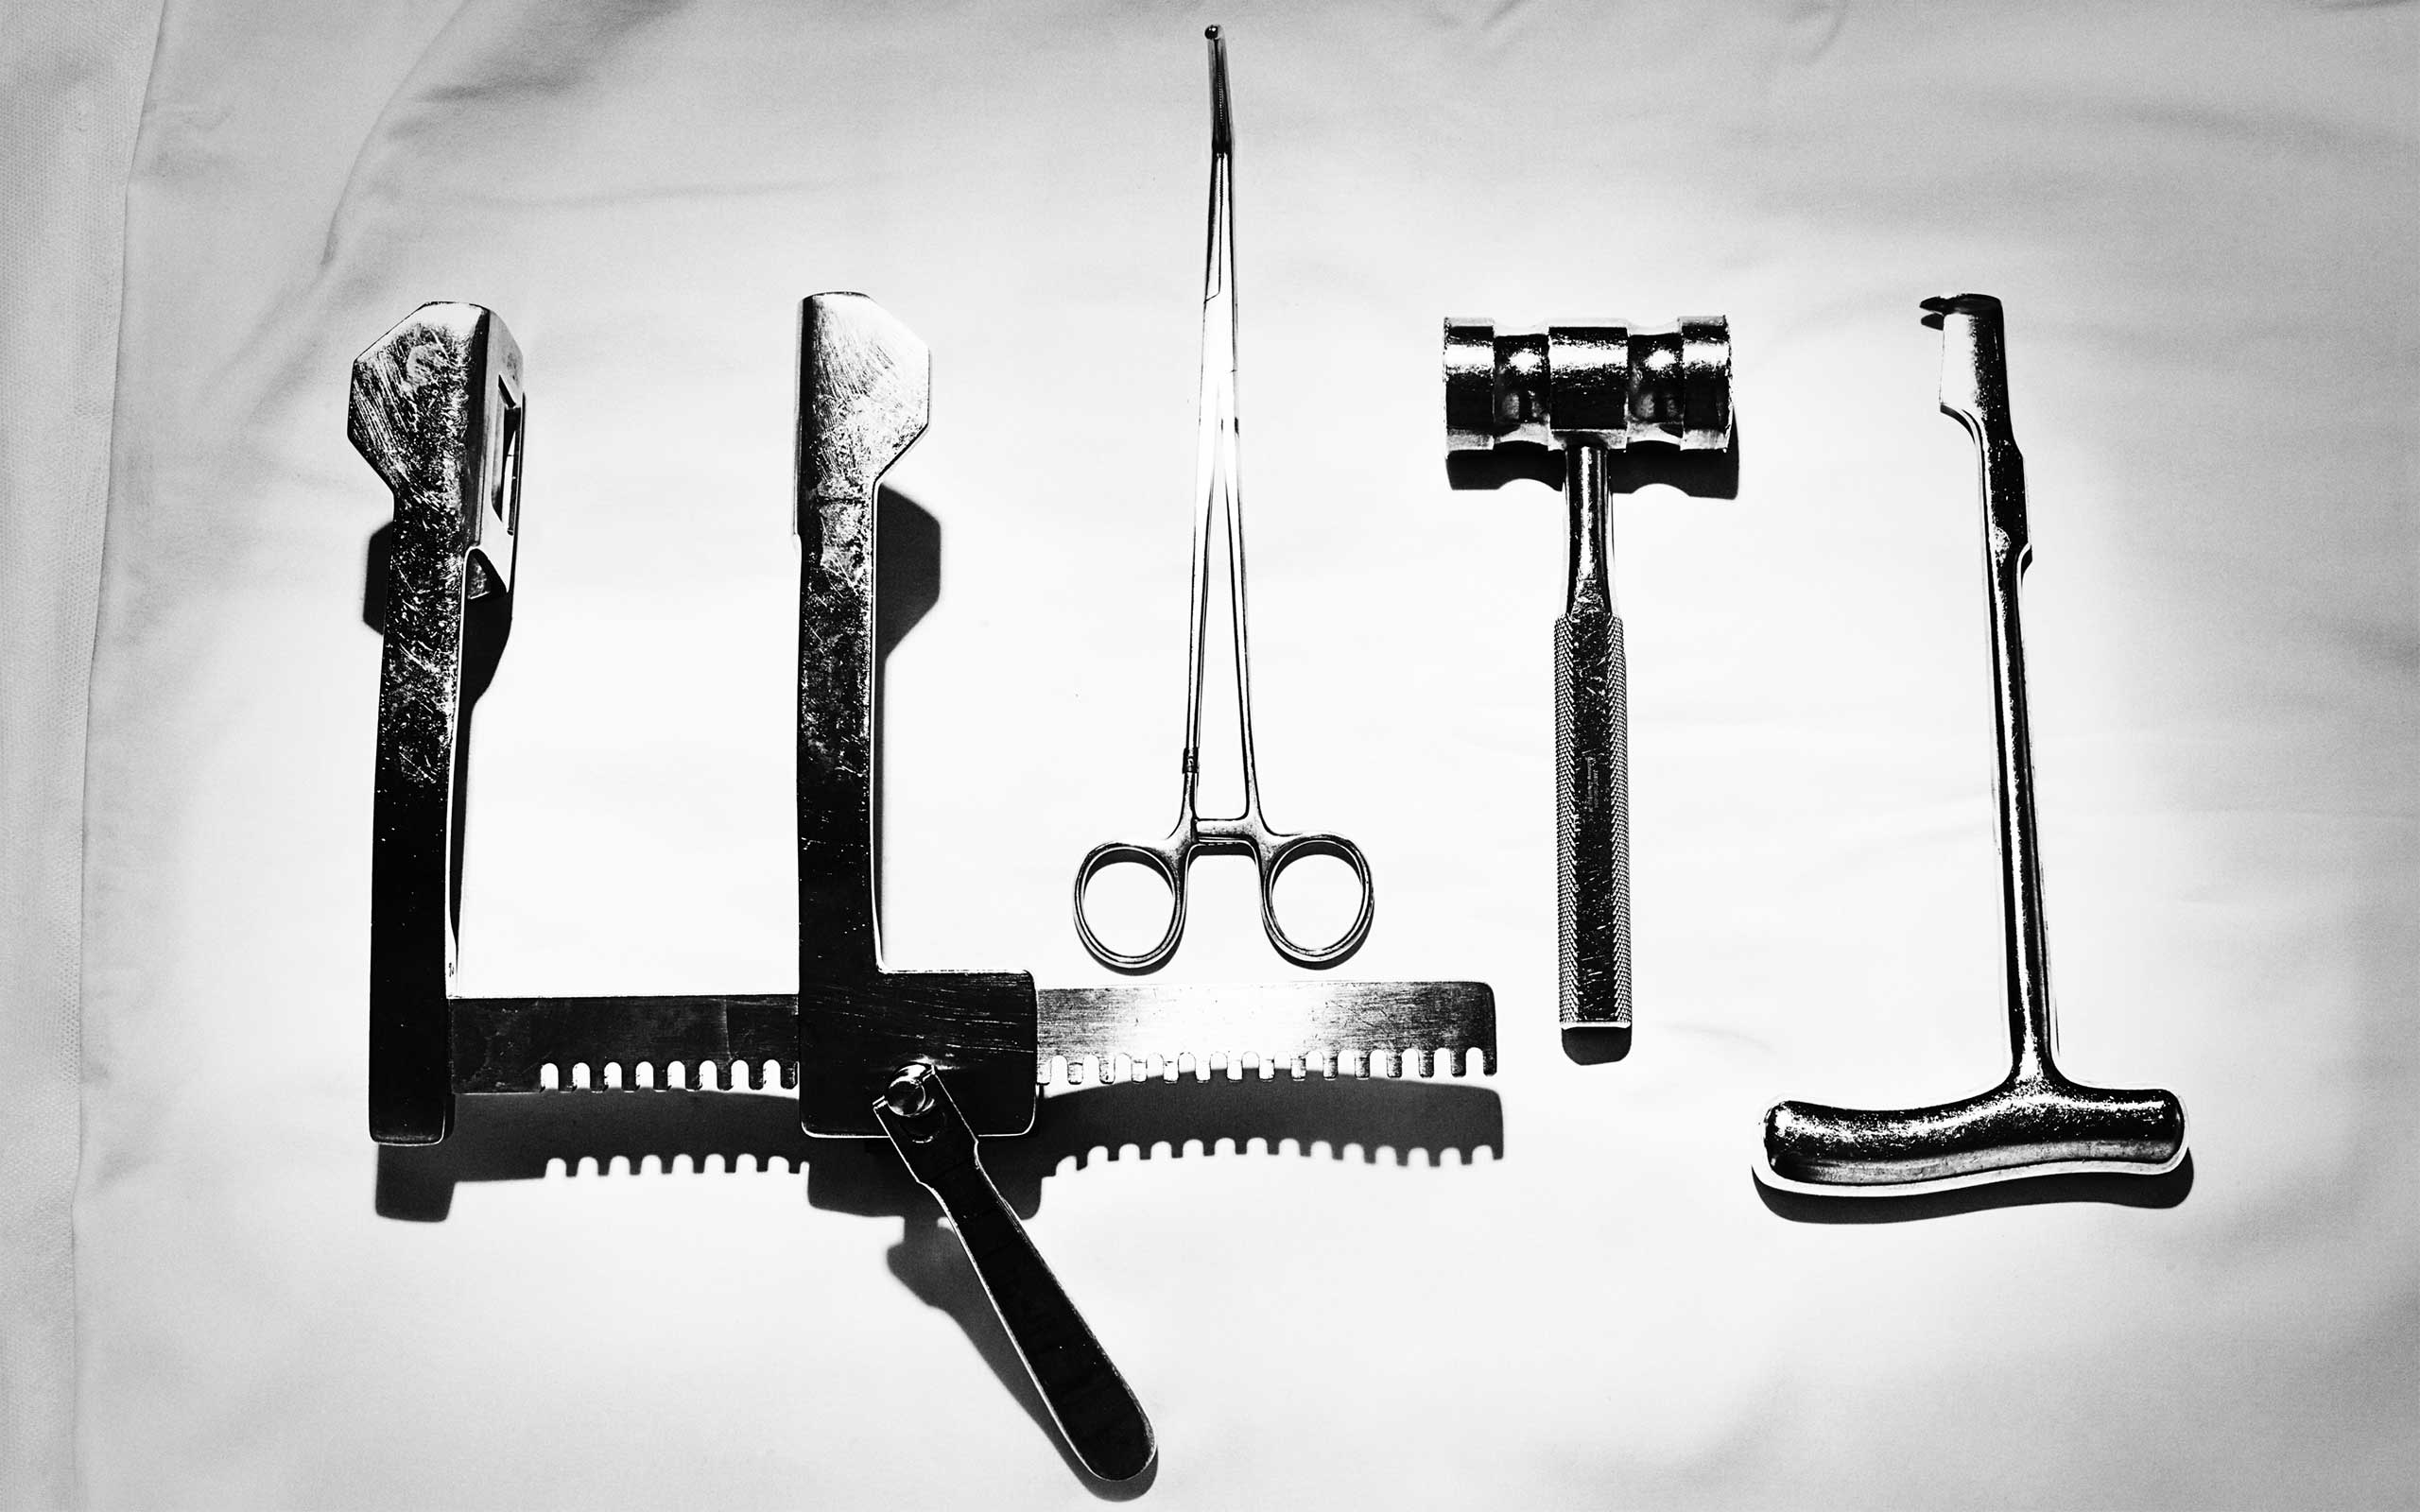 What Bullets Do To Bodies Highline 06 15 2005 I Went Ahead And Got Quotes For Replacement Equipment Some Of The Simple Tools Surgeons Employ In Trauma Bay Including Lebsche Knife Silver Hammer Used Break Sternum While Opening Chest